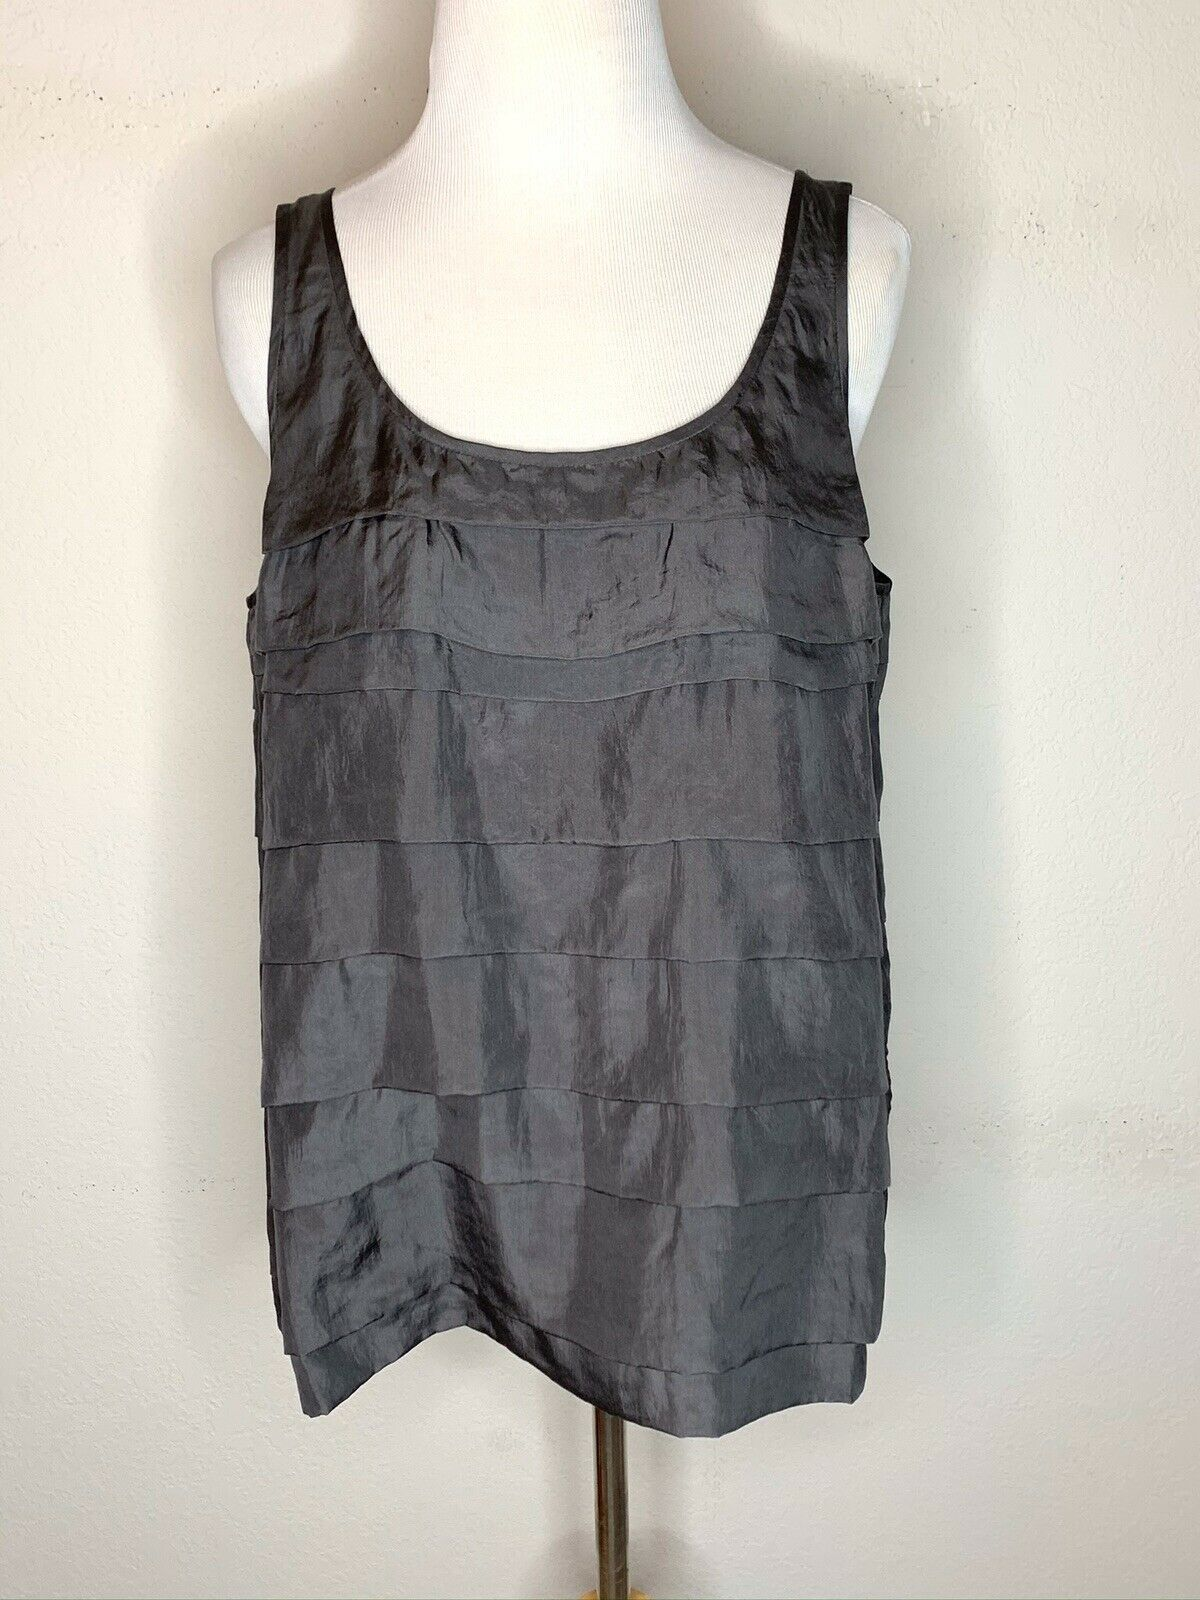 Primary image for Eileen Fisher Silk Habutai Tank Top Tiered Layered Scoop Neck Bark Gray Sz M NWT